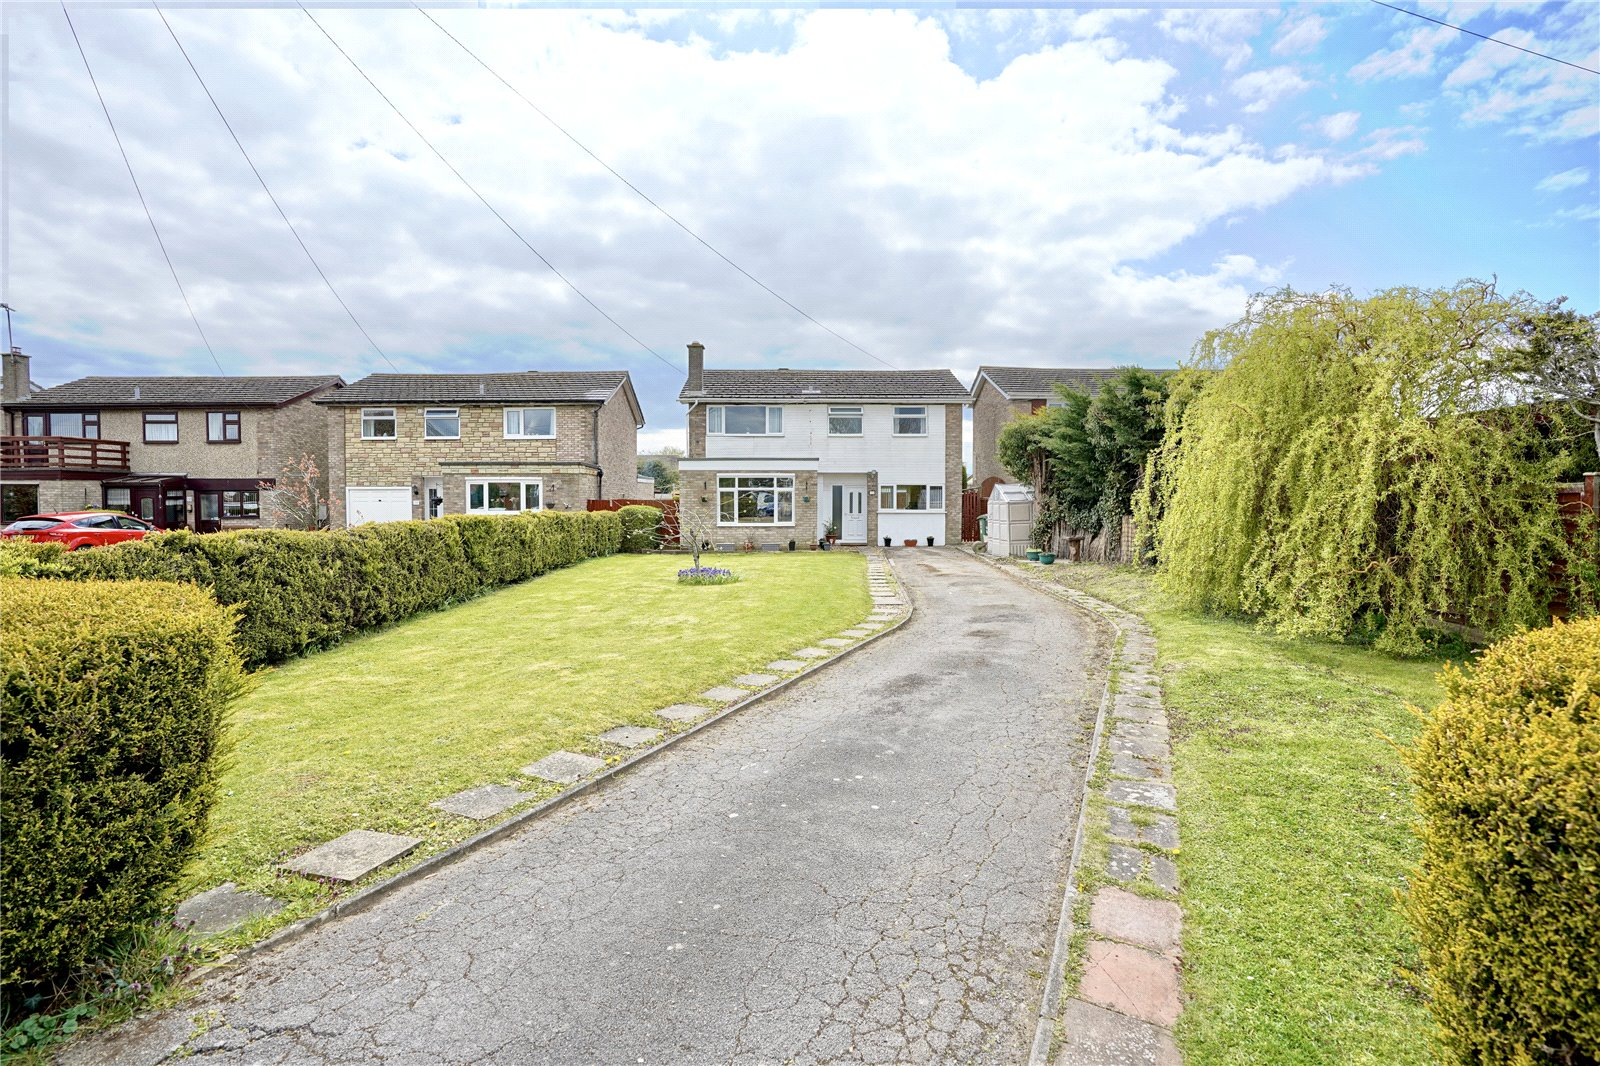 4 bed house for sale in Alconbury, PE28 4EB - Property Image 1